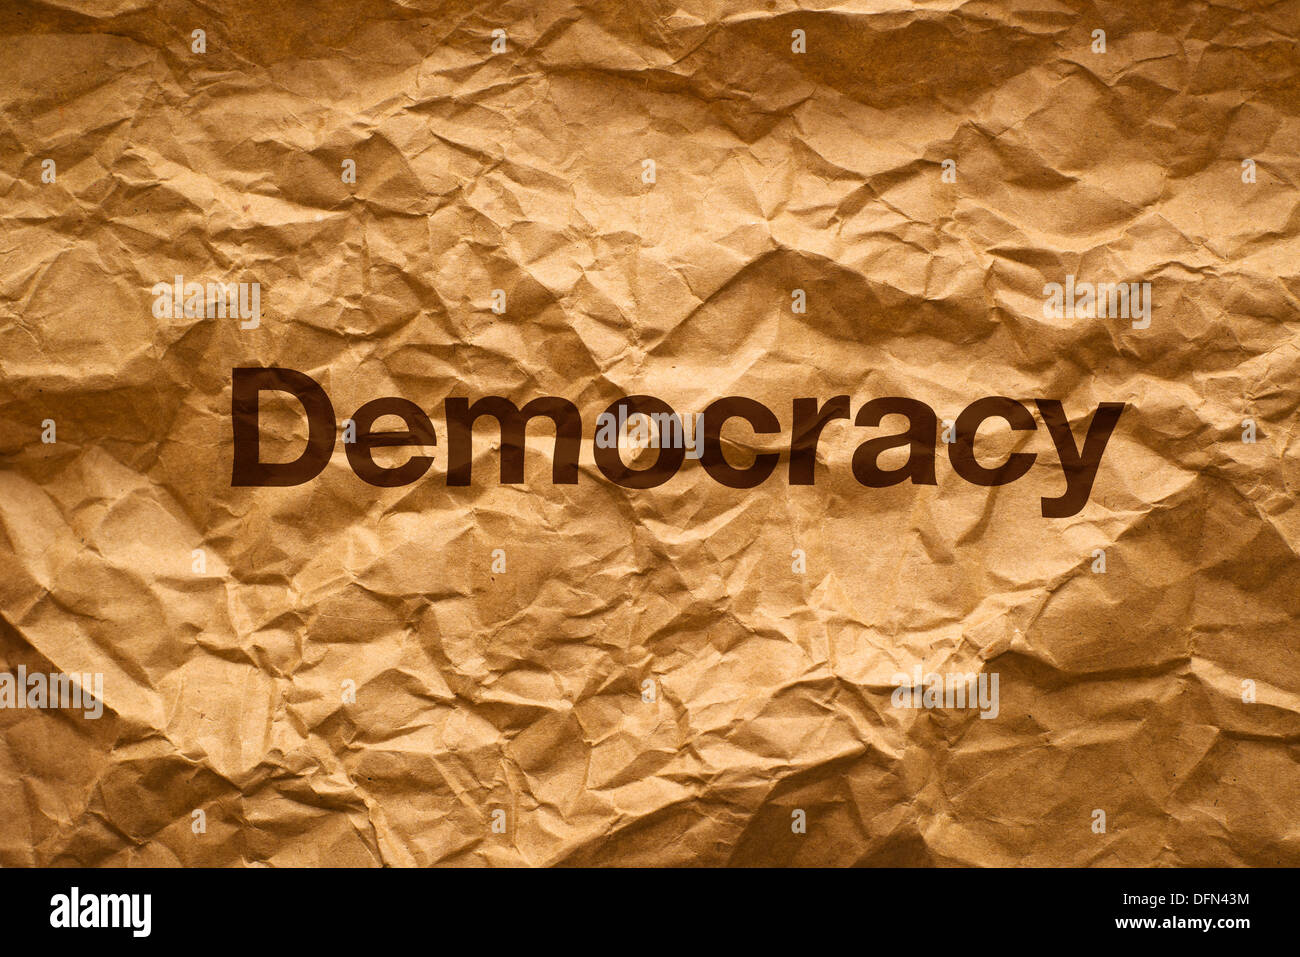 Democracy on Crumpled paper texture - Stock Image